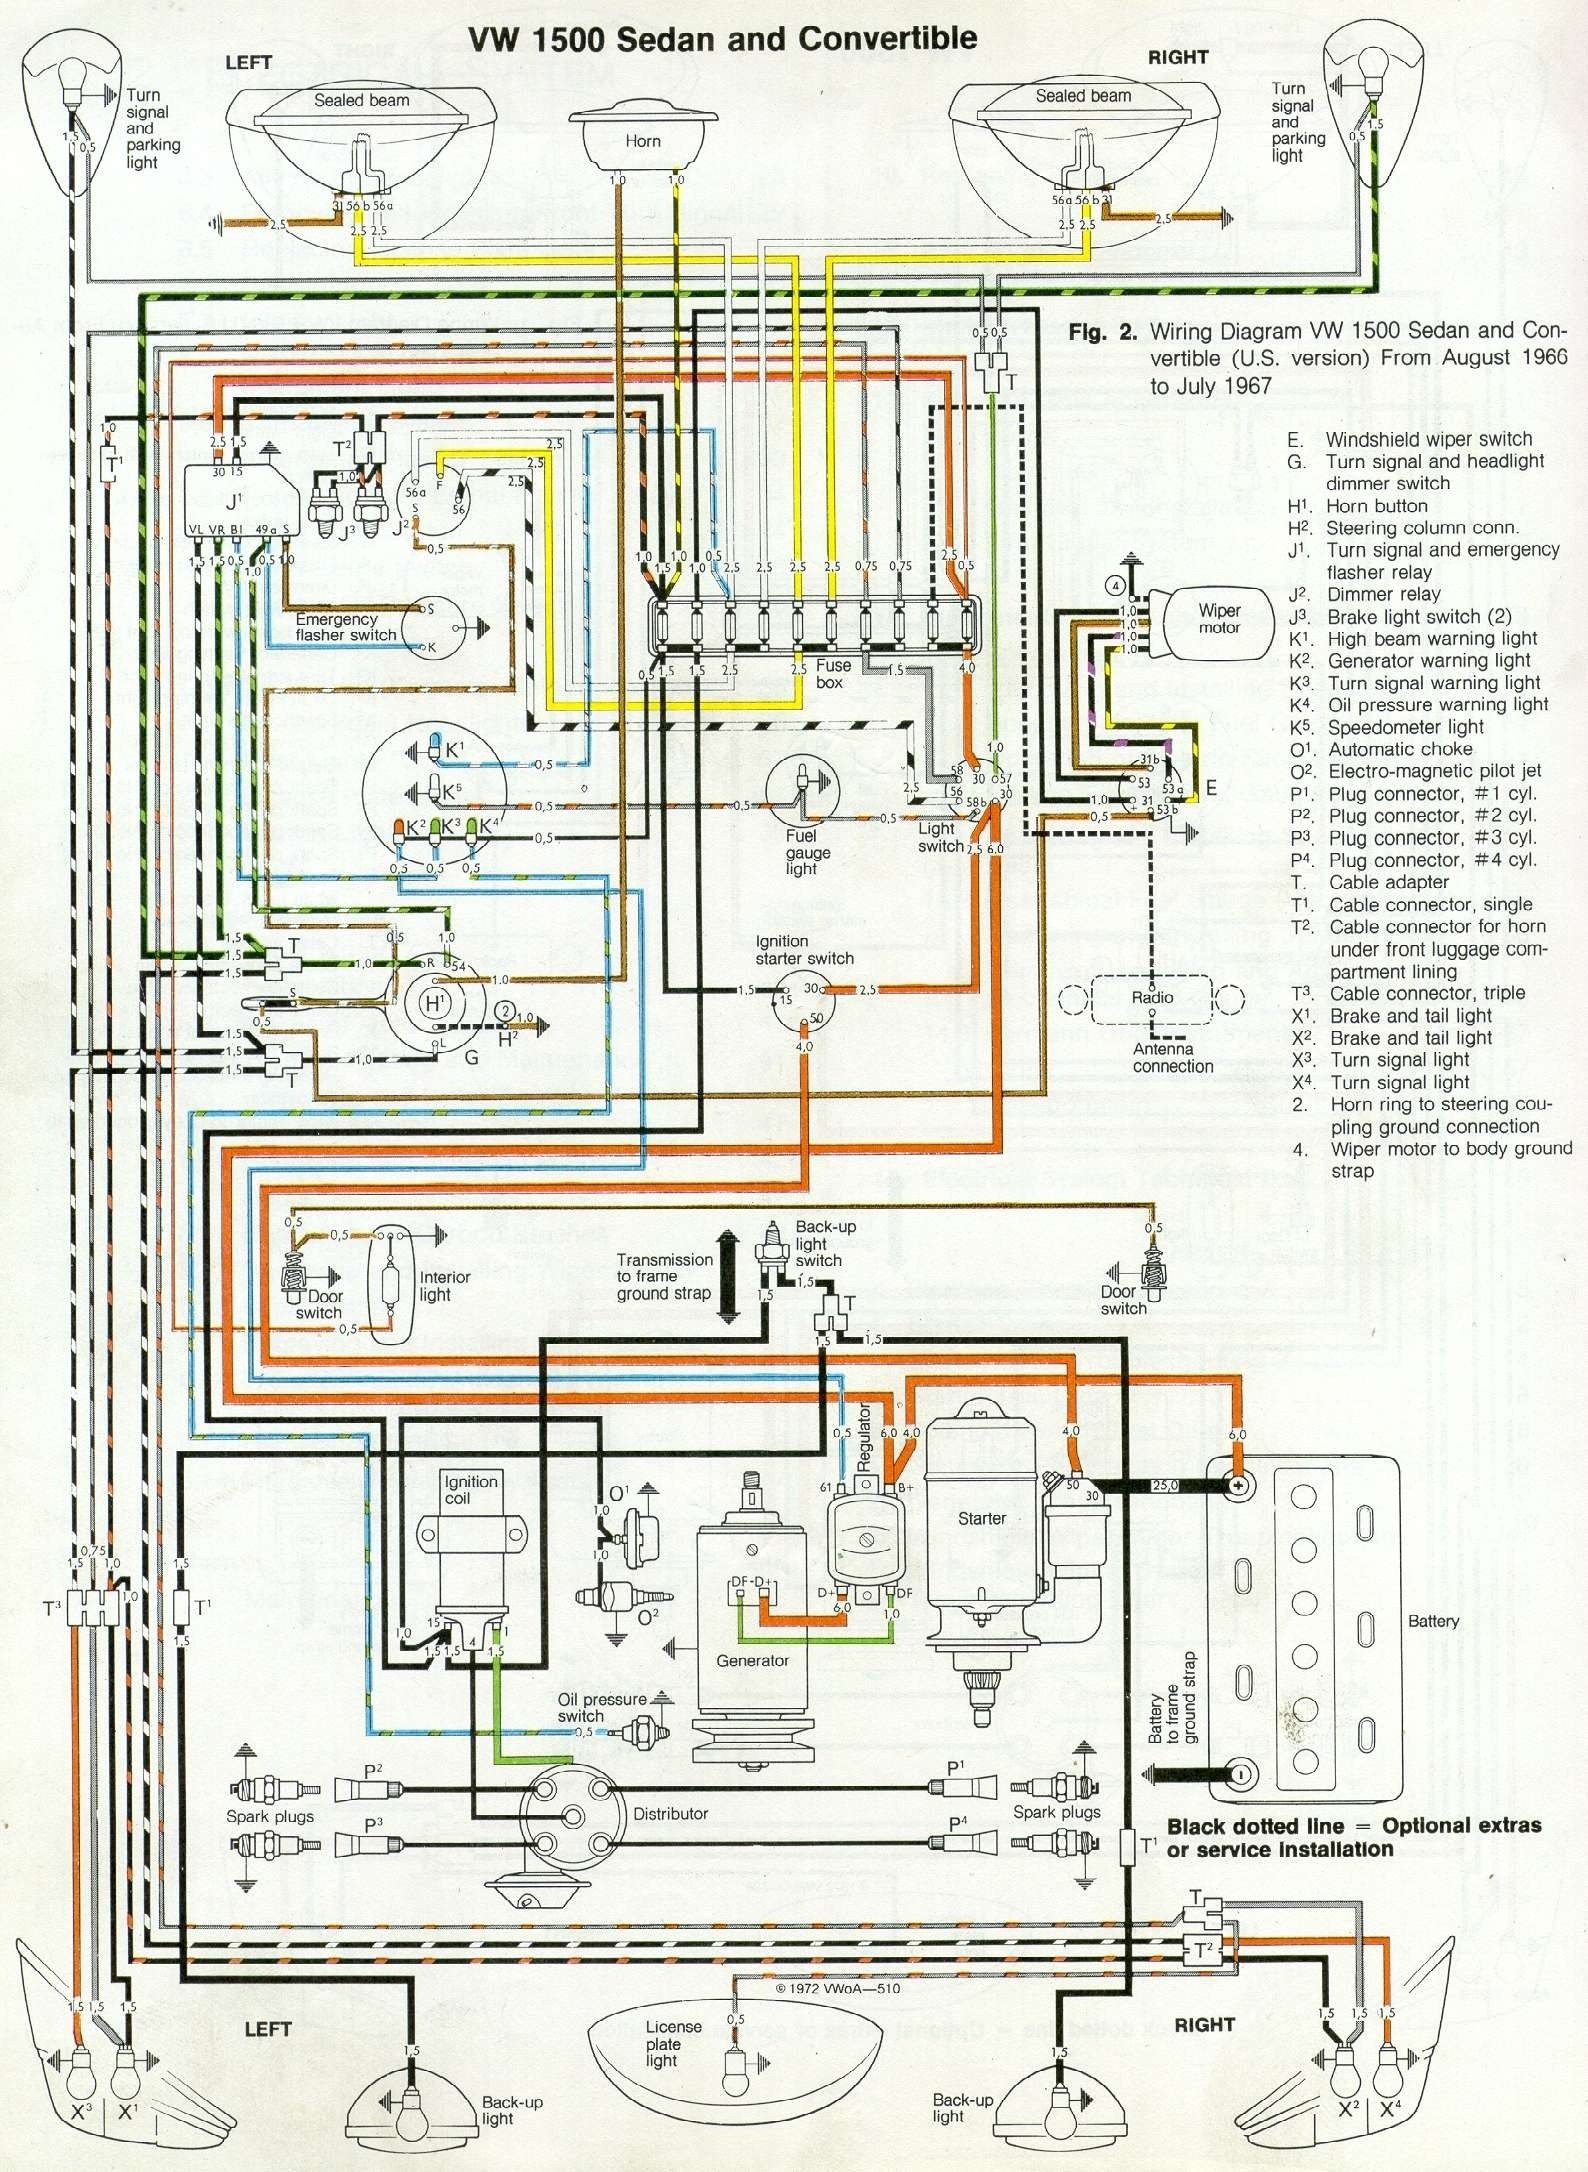 80fbec6dc035e6862b5ab48389504277 66 and '67 vw beetle wiring diagram vw beetles, beetles and sedans 76 vw beetle wiring diagram at edmiracle.co